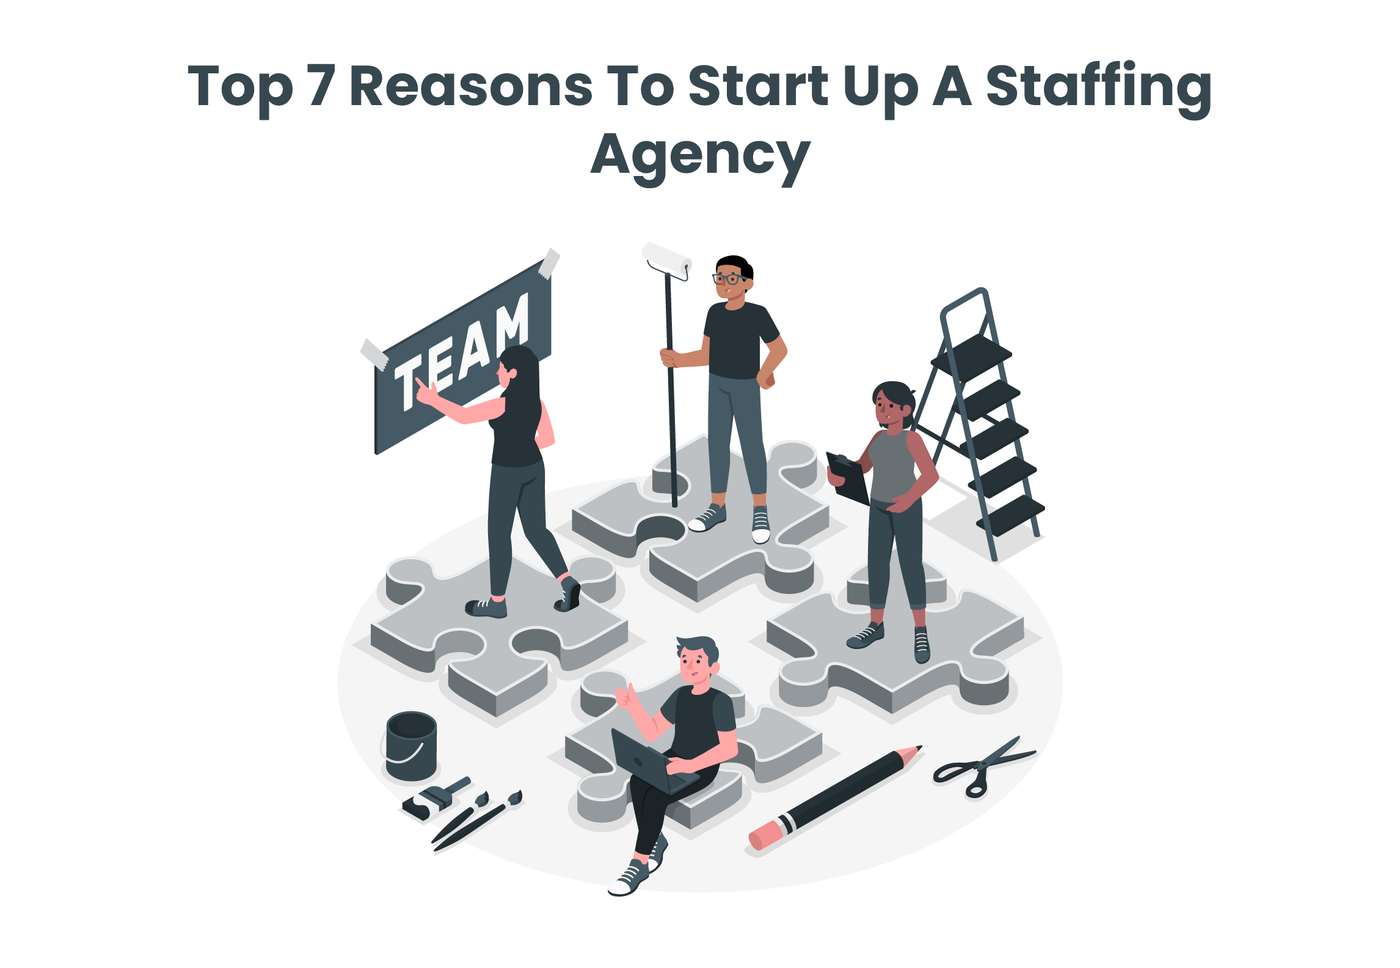 Top 7 Reasons To Start Up A Staffing Agency